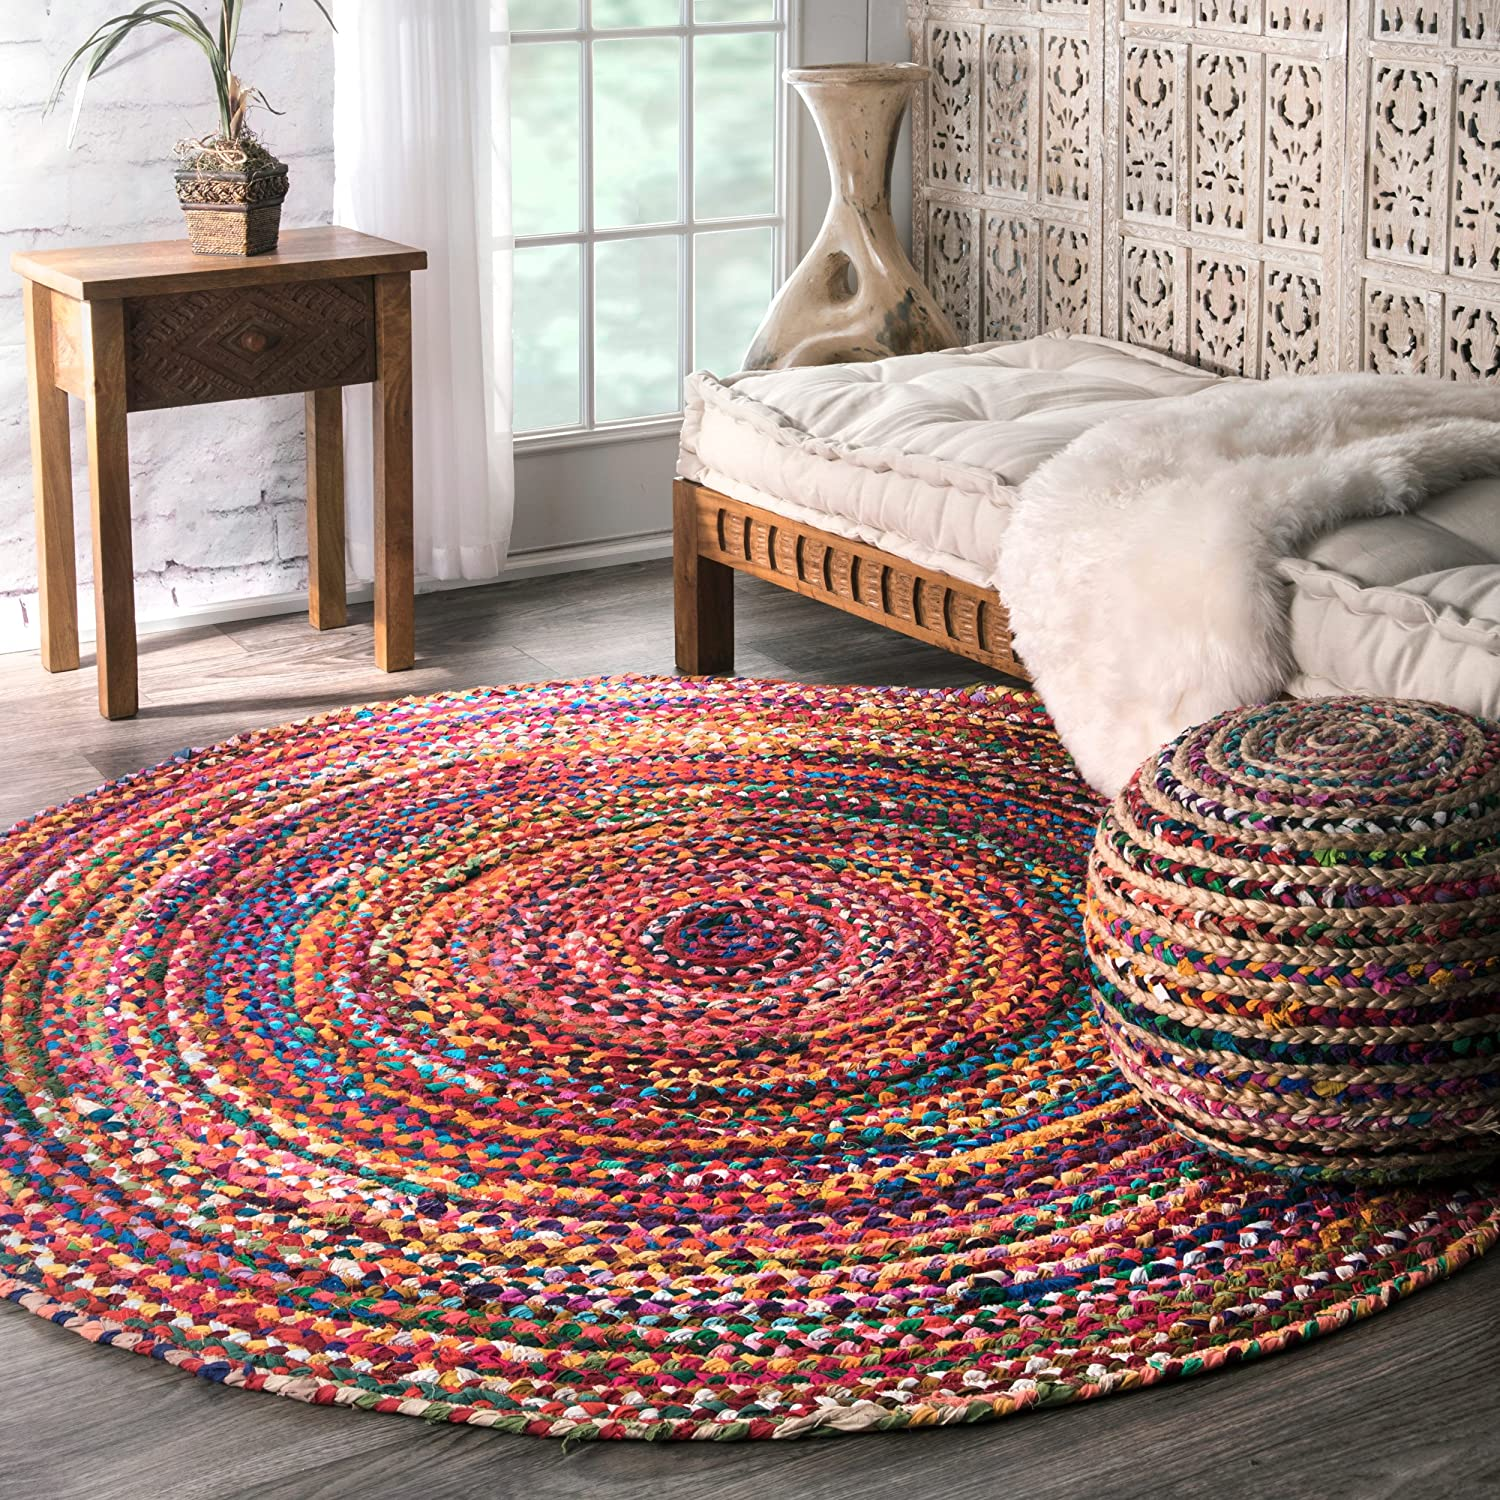 rug across off new size recycled t listing fullxfull round sale rugs il braided and shirt a from ejmu rainbow select